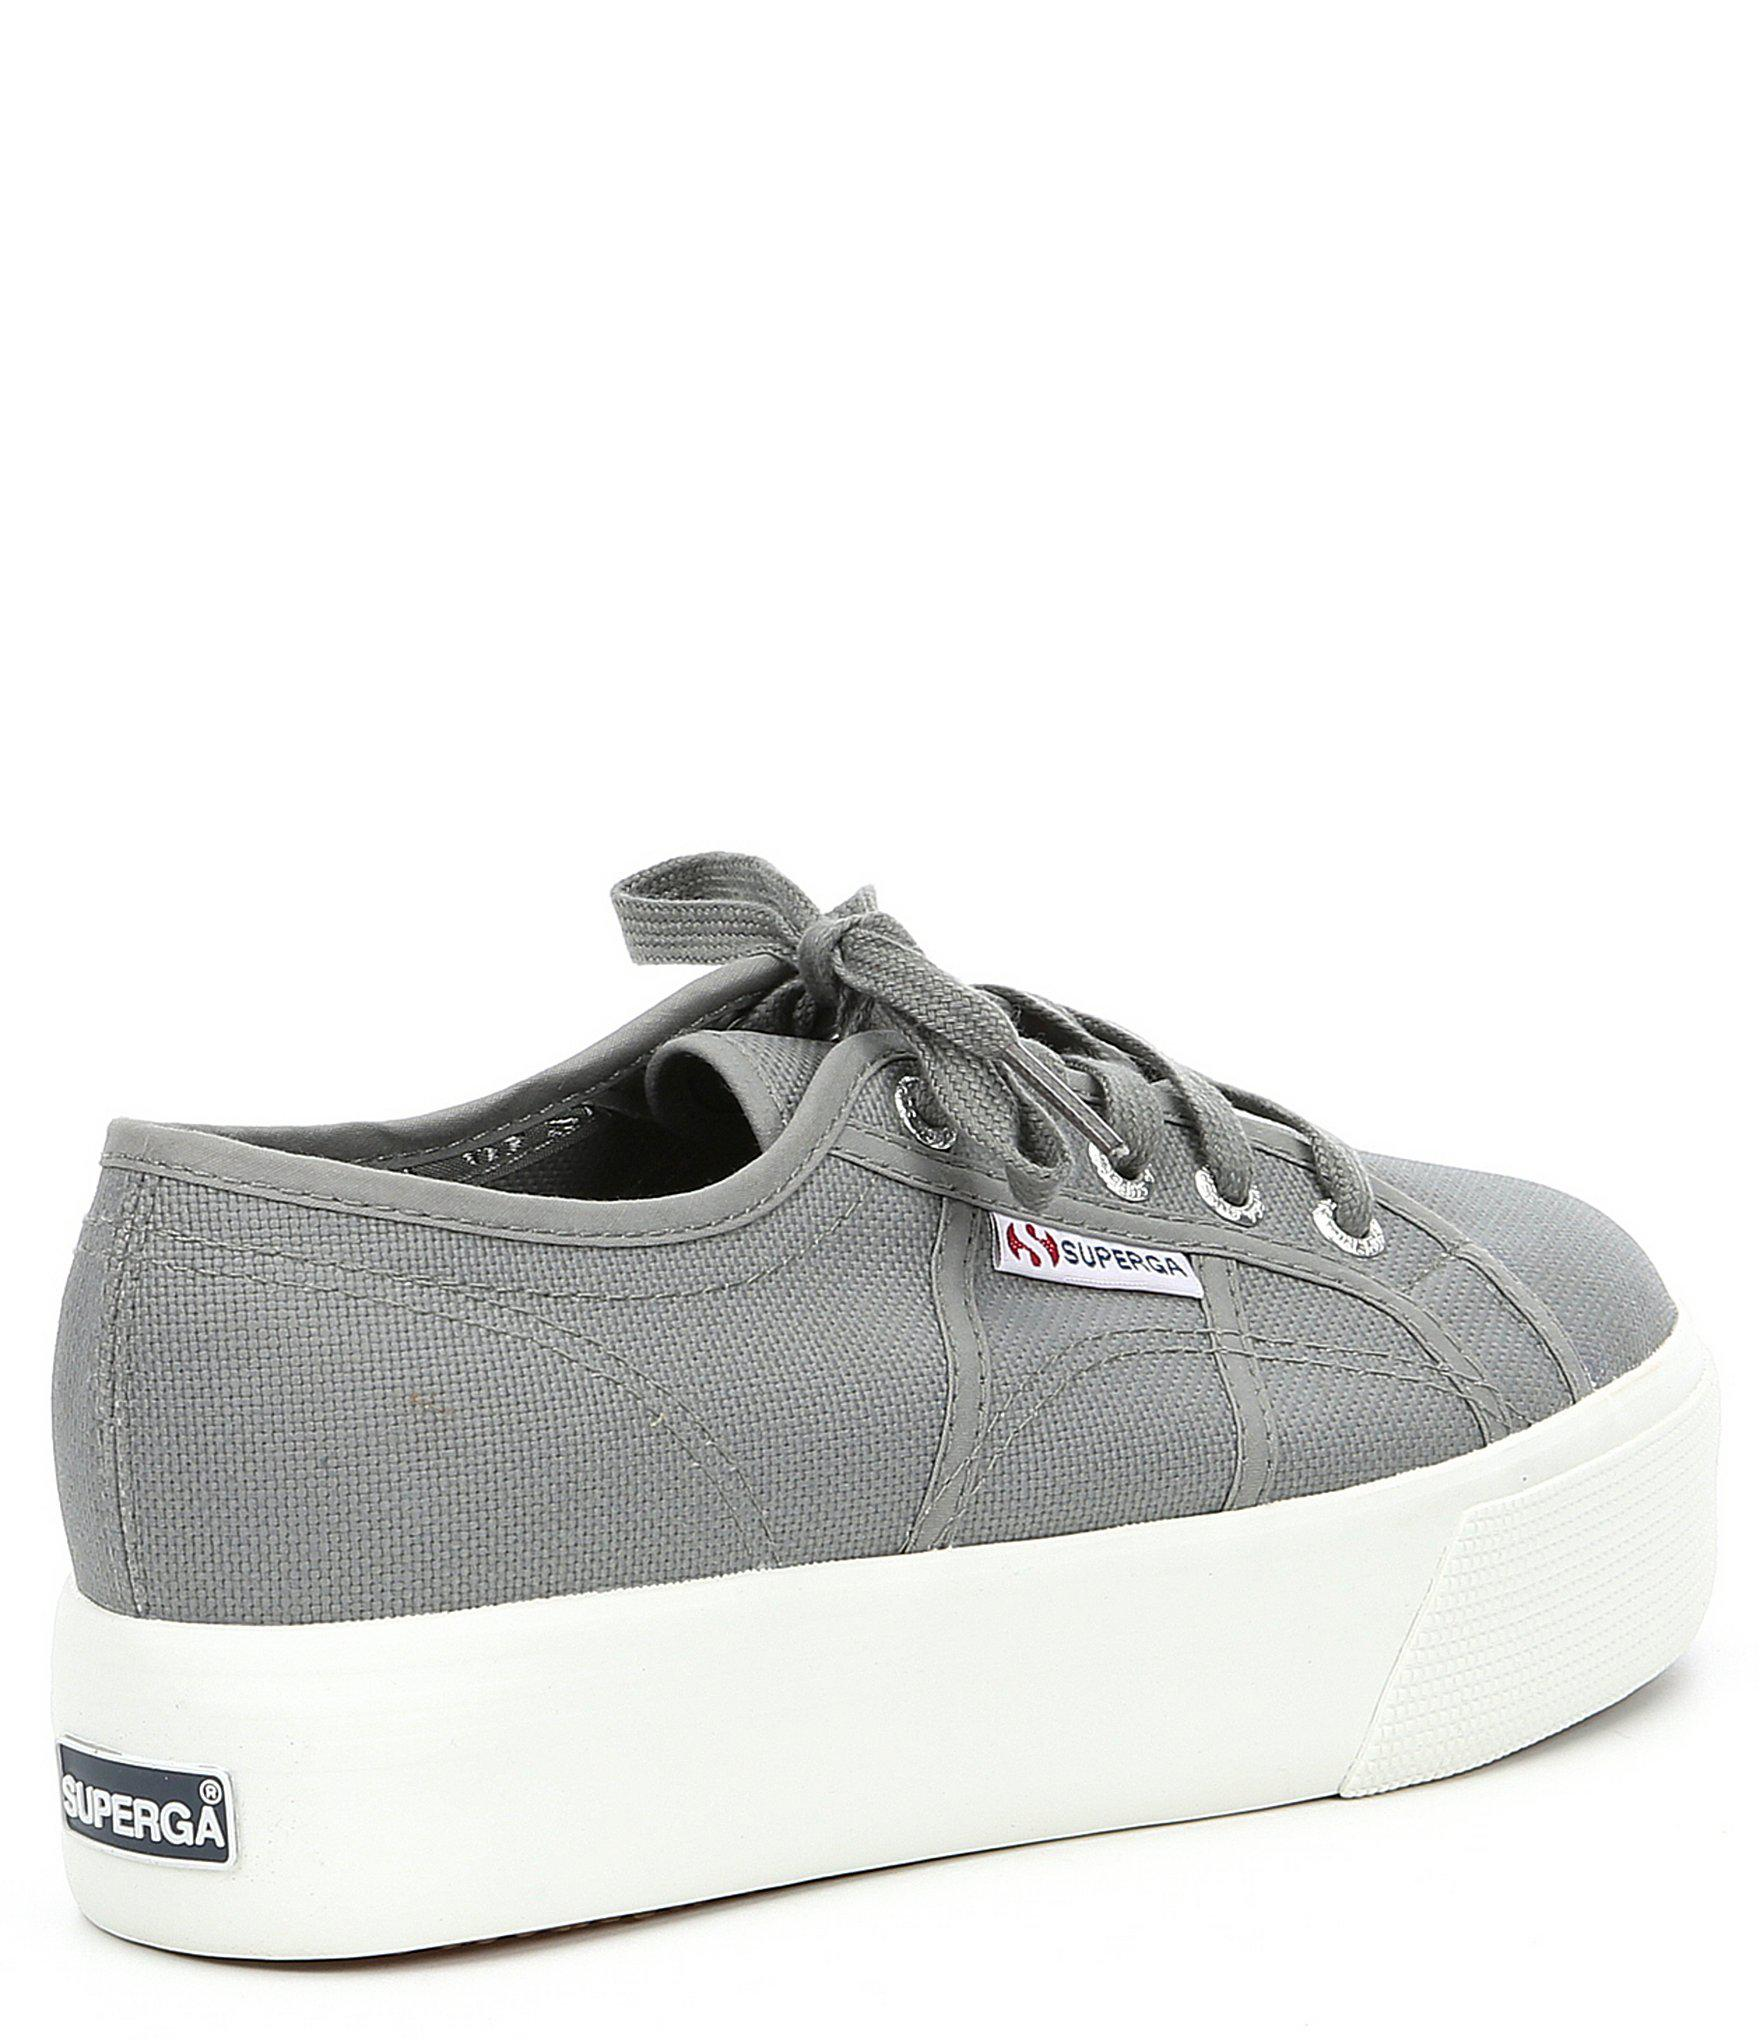 7d1c89427dcf Superga - Gray 2790-acotw Linea Up And Down Trainers - Lyst. View fullscreen